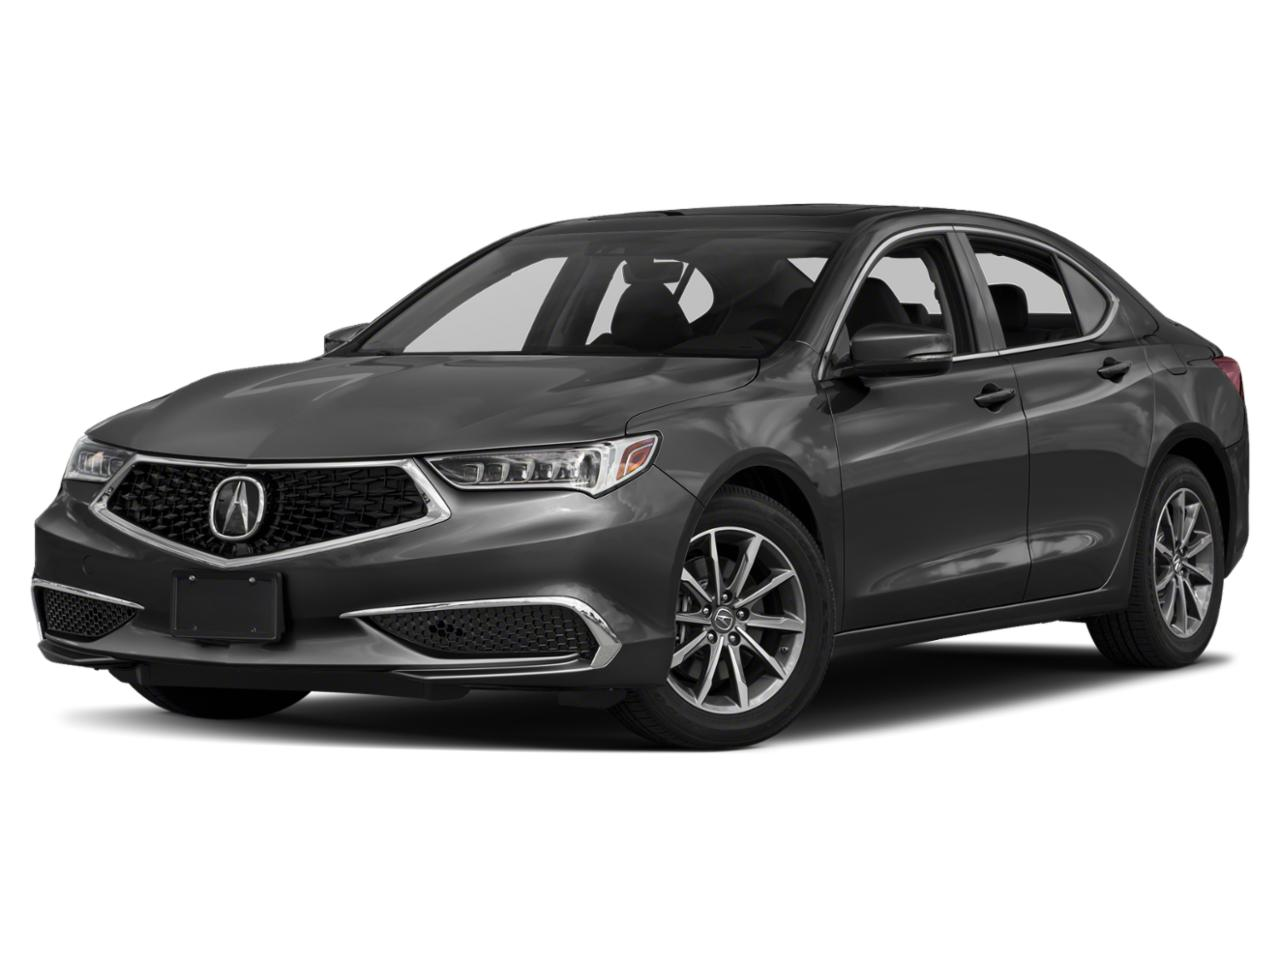 2018 Acura TLX Vehicle Photo in Pleasanton, CA 94588